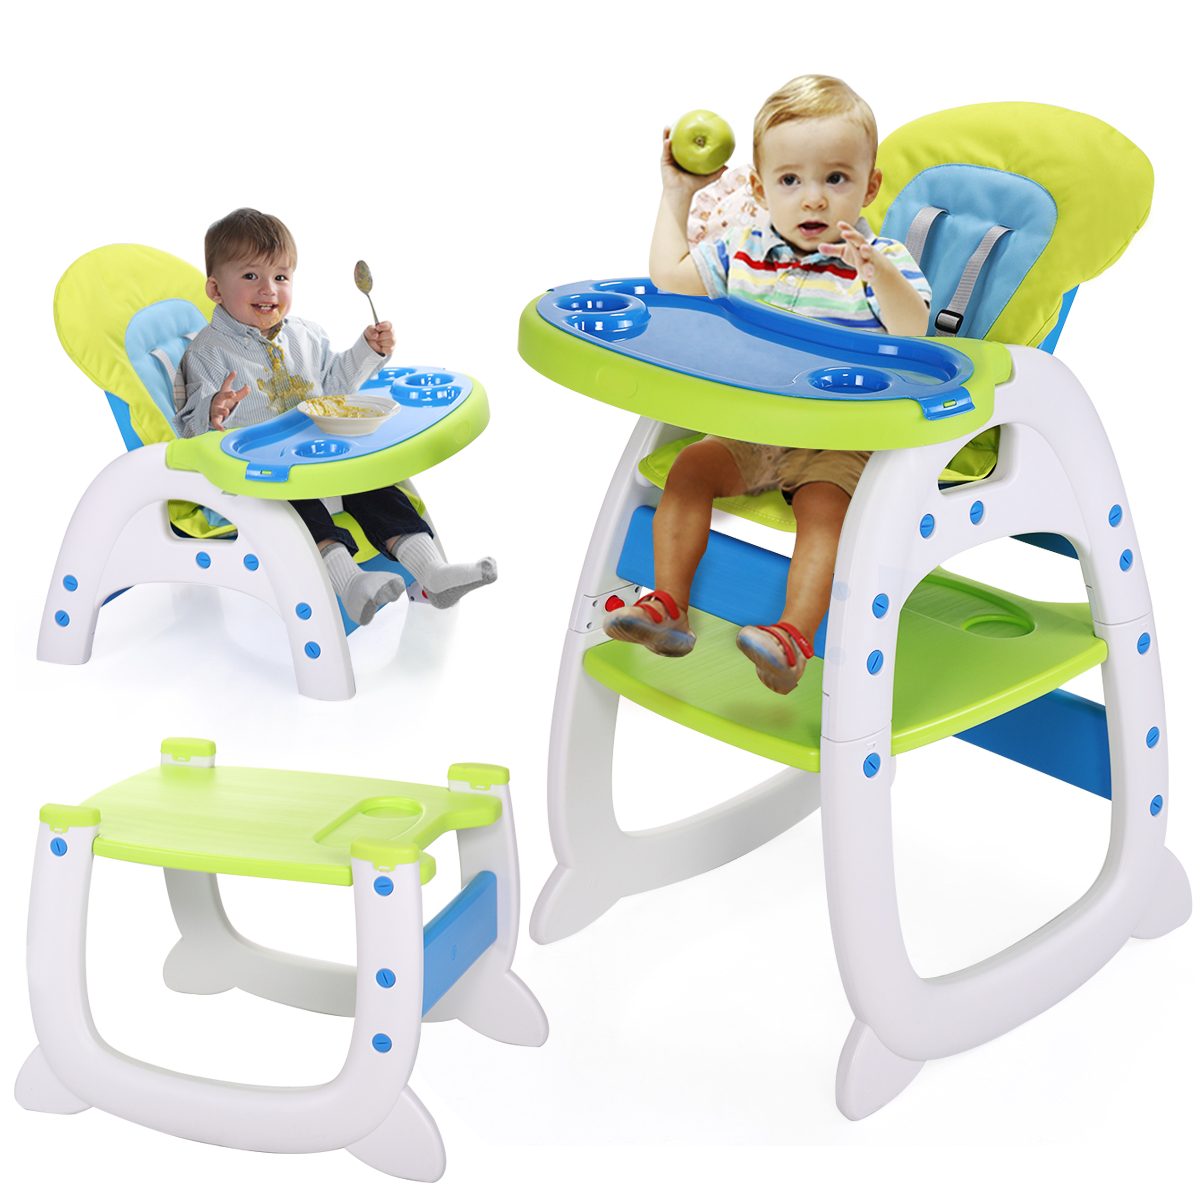 Lazymoon Blue-Green 3 in 1 Baby High Chair Convertible Play Table Seat Booster Infant Toddler Highchairs